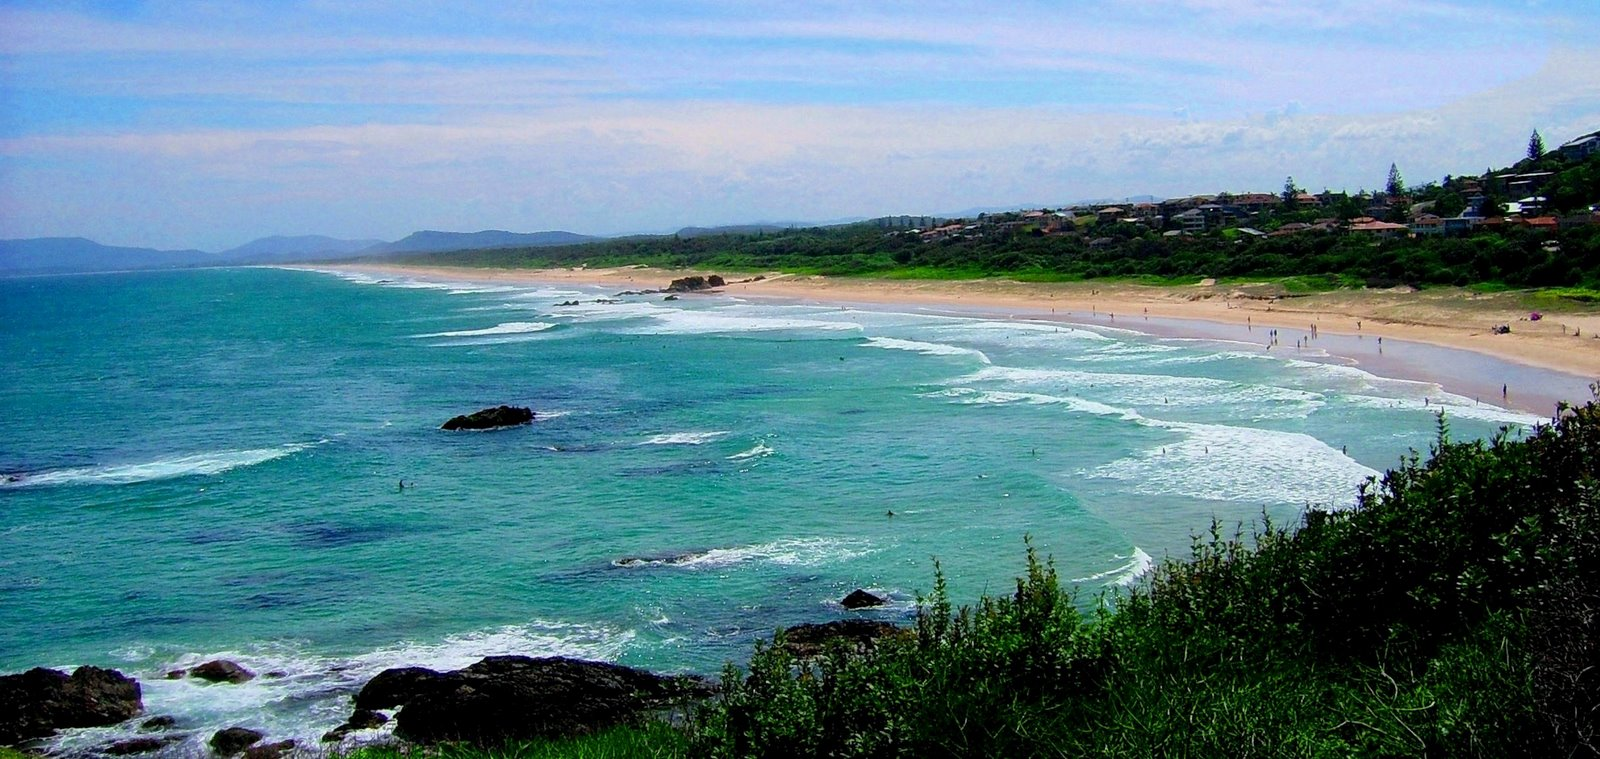 Port Macquarie Australia  City new picture : KJ Kaye and Jose Amazing Photos: Port Macquarie, NSW, Australia